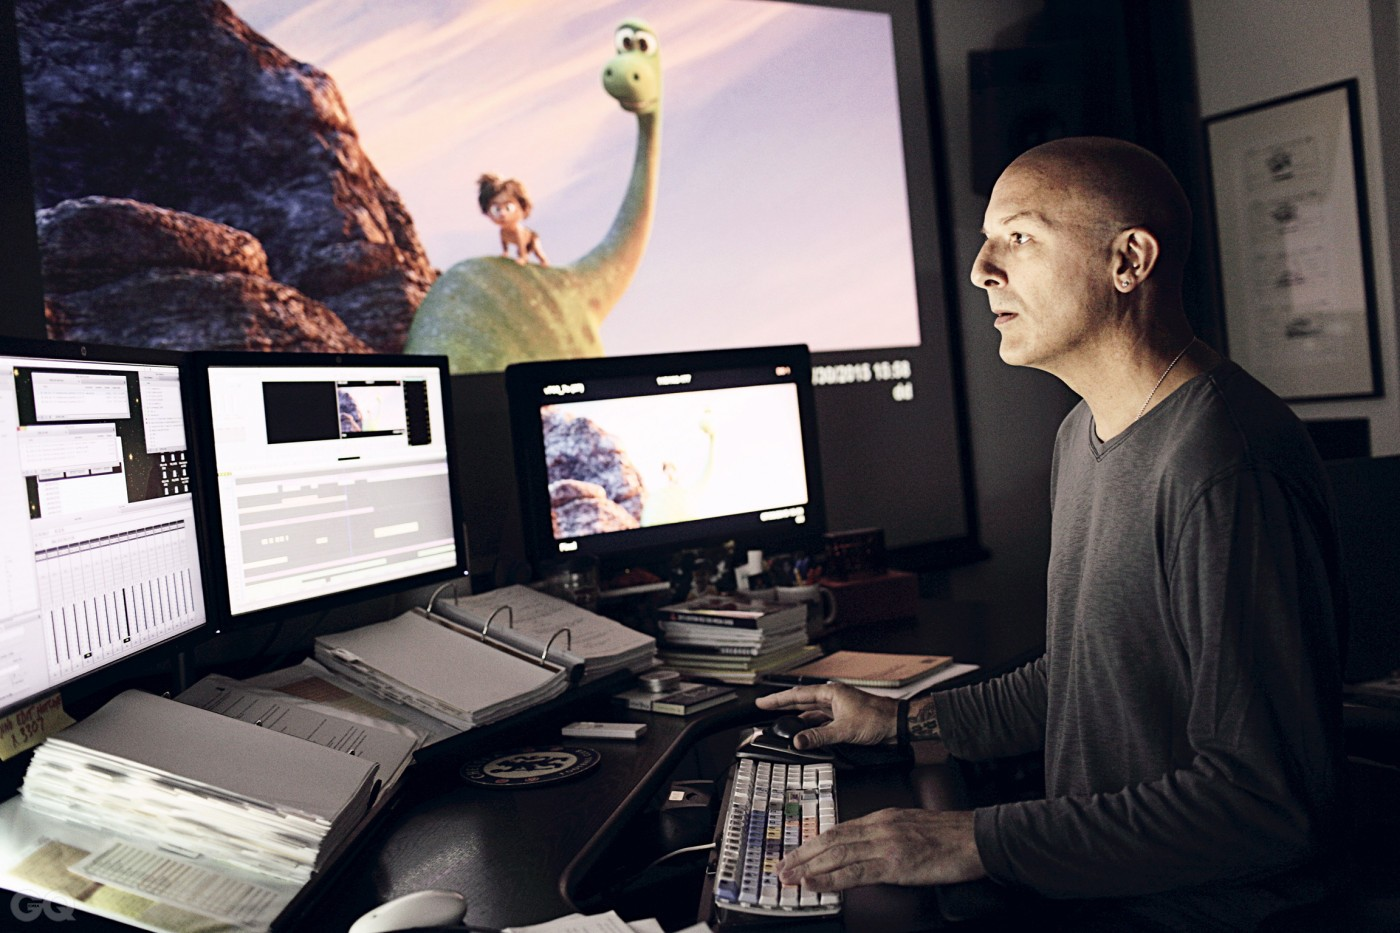 """Film Editor Stephen Schaffer works on a sequence from """"The Good Dinosaur"""" in his office, as seen on July 31, 2015 at Pixar Animation Studios in Emeryville, Calif. (Photo by Deborah Coleman / Pixar) ?ƒ2015 Disney??¡ËPixar. All Rights Reserved."""